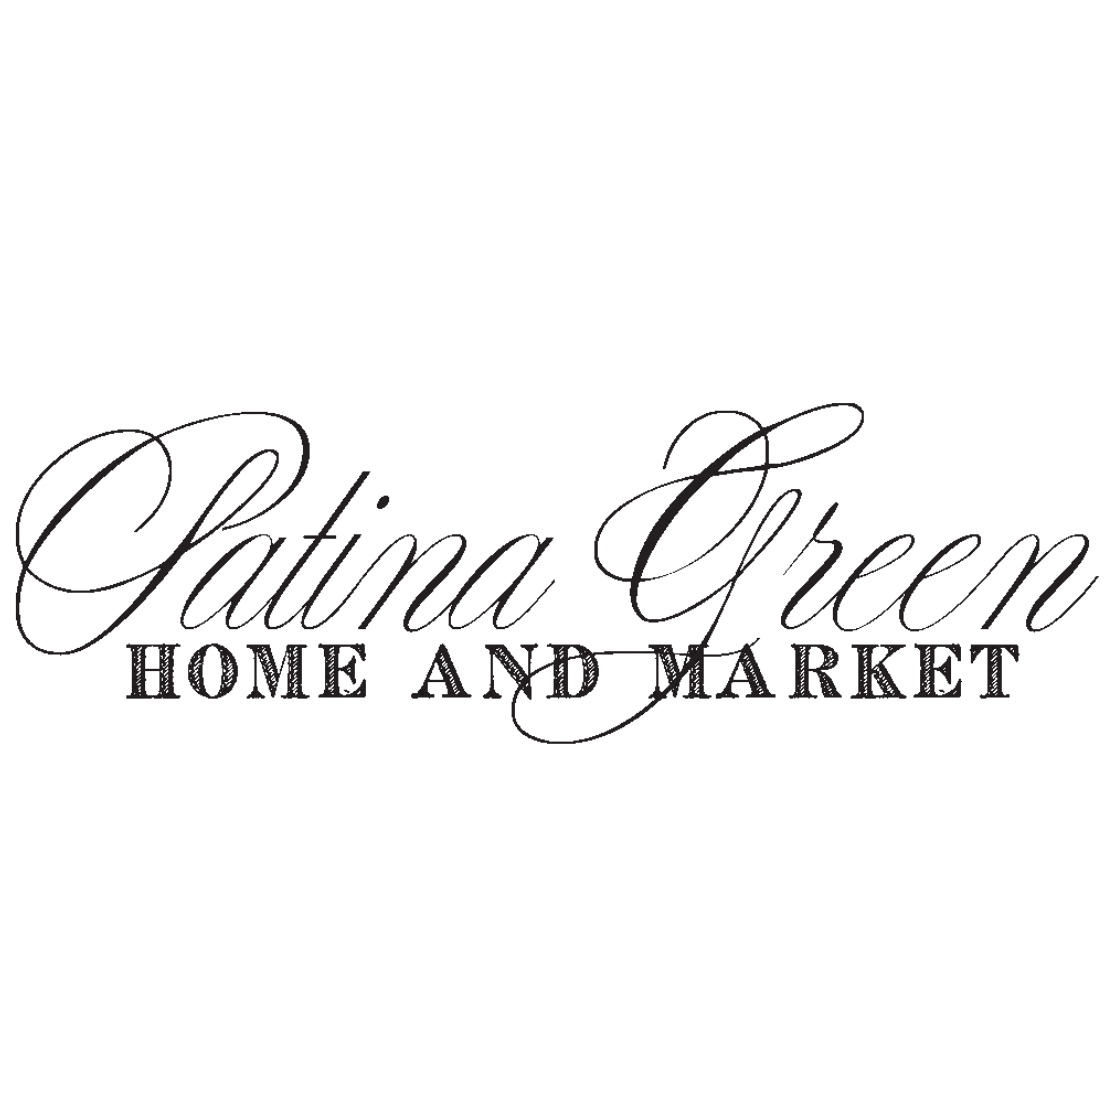 Patina Green Home and Market, Downtown McKinney, Texas